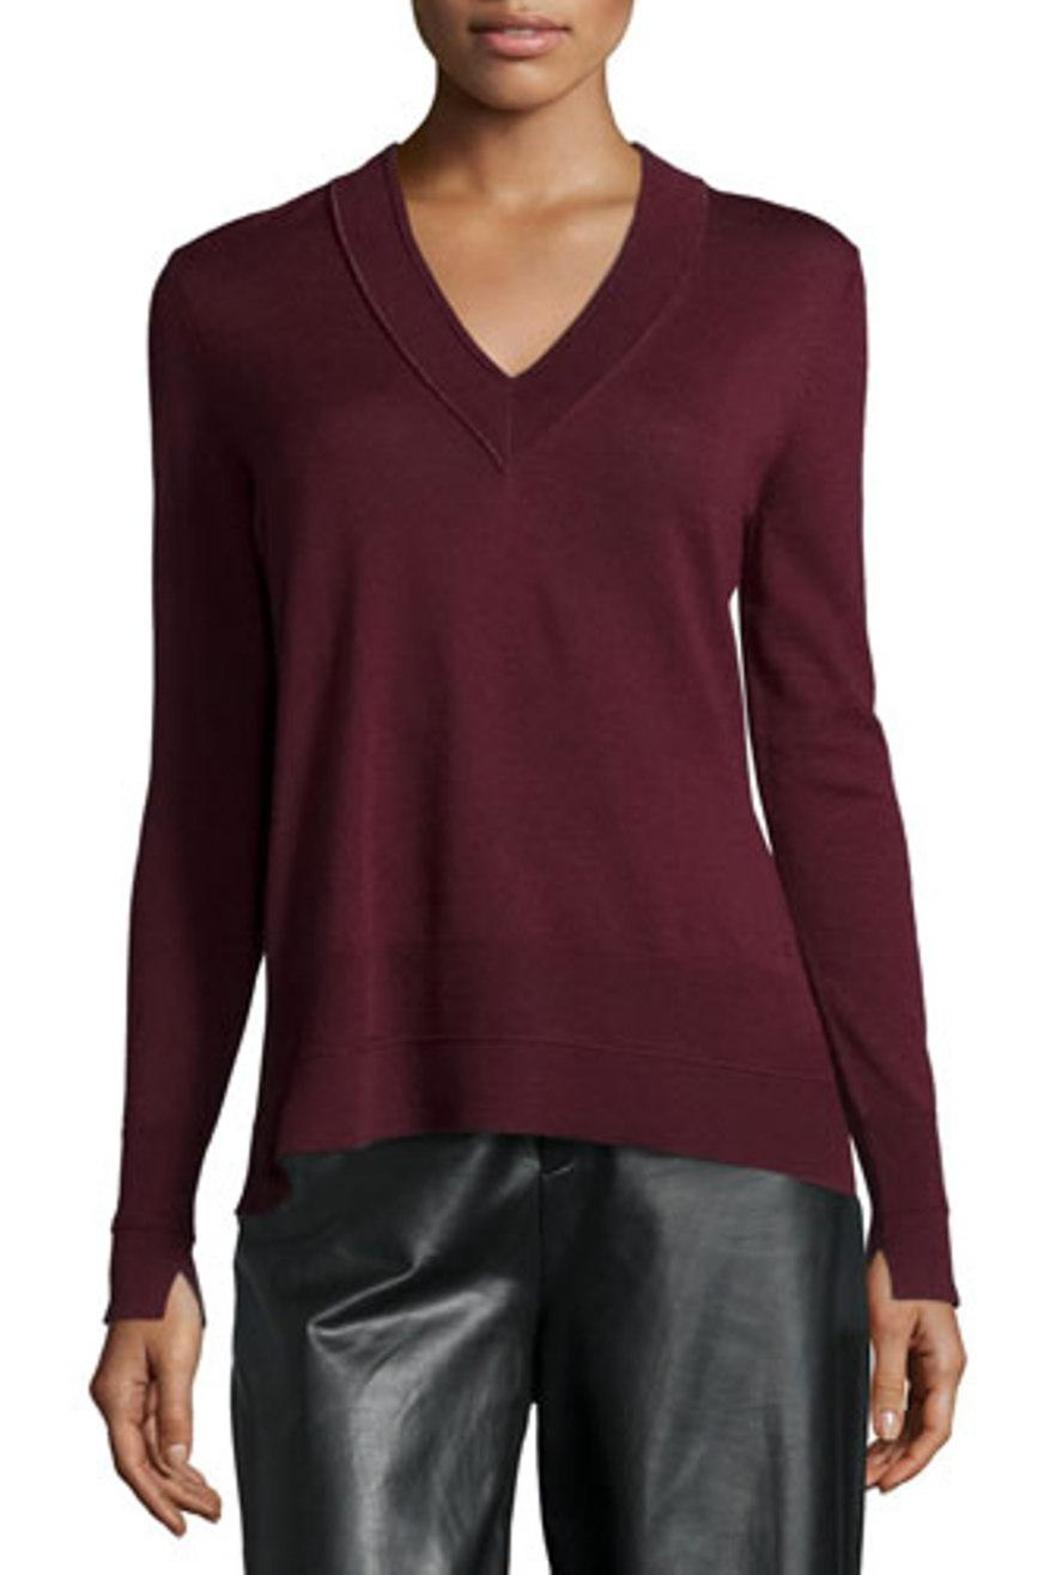 Rag & Bone Burgundy Long-Sleeve Sweater from Canada by Era Style ...